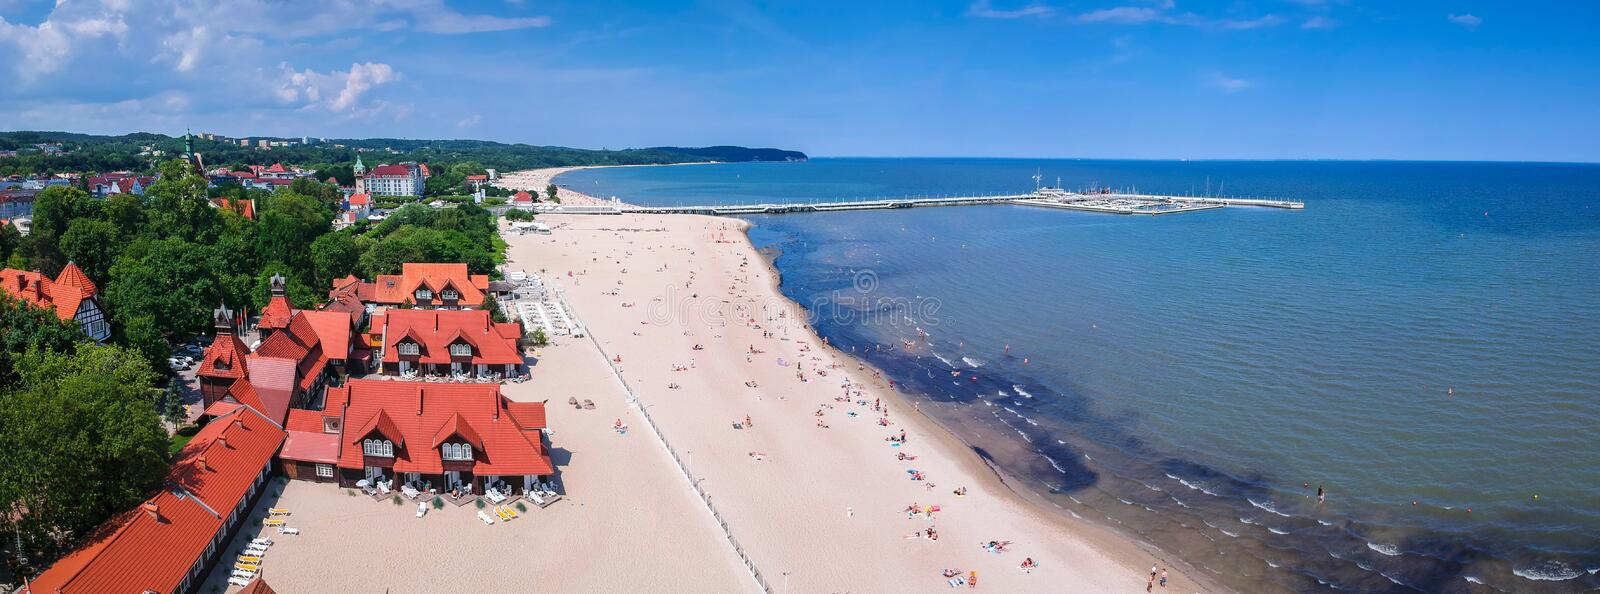 Panorama of the Baltic sea coastline with wooden pier in Sopot, Poland. Aerial, view, beach, vacation, molo, tourist, water, travel, promenade, europe royalty free stock photos